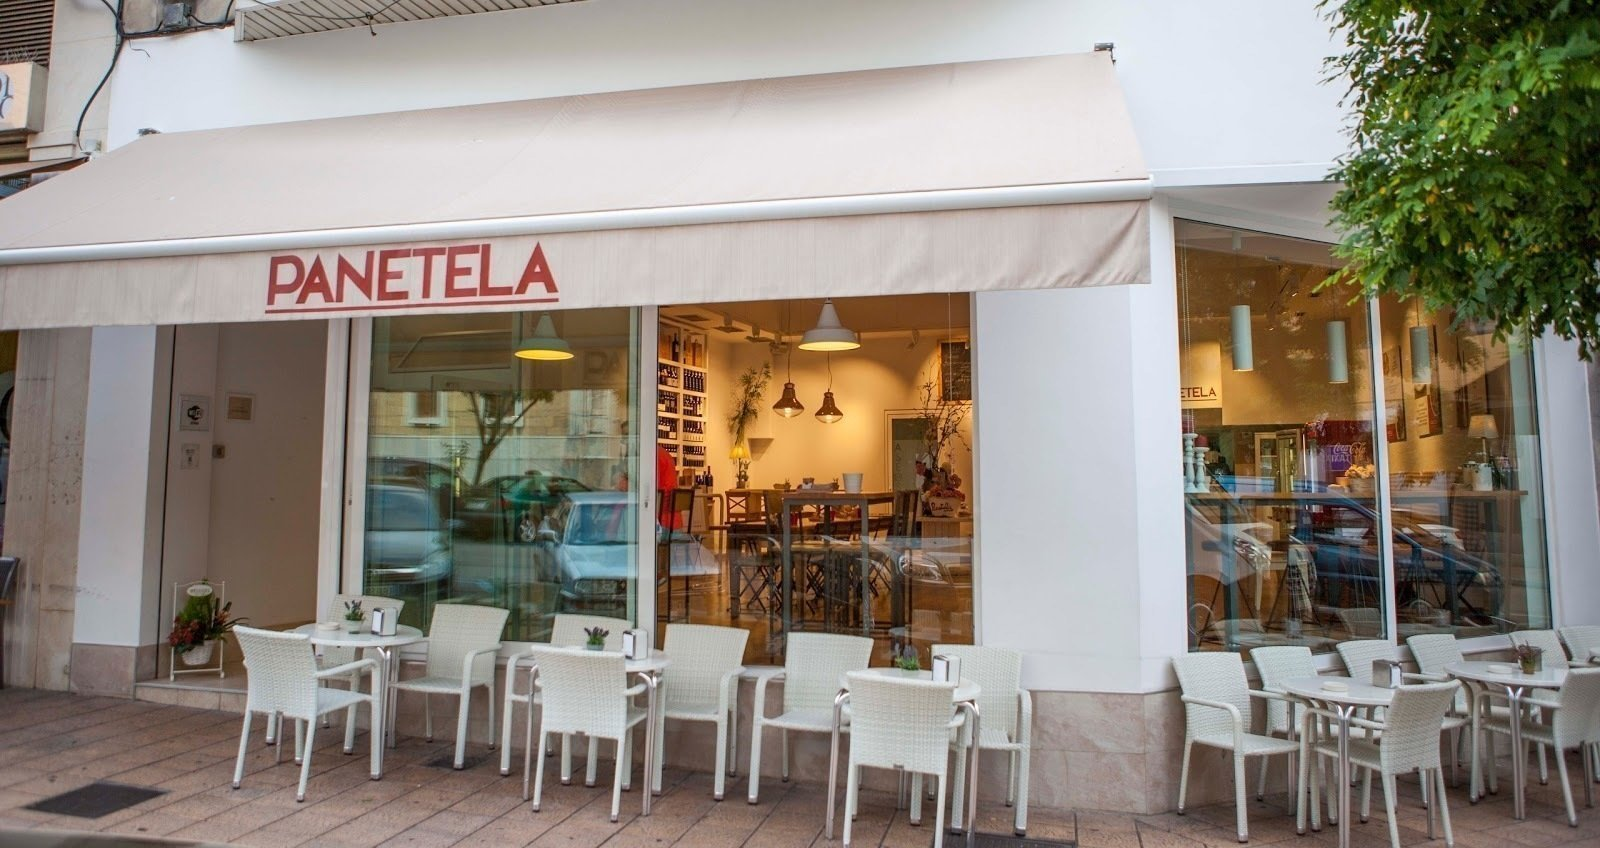 Panetela: A Work-Friendly Place in Aviles